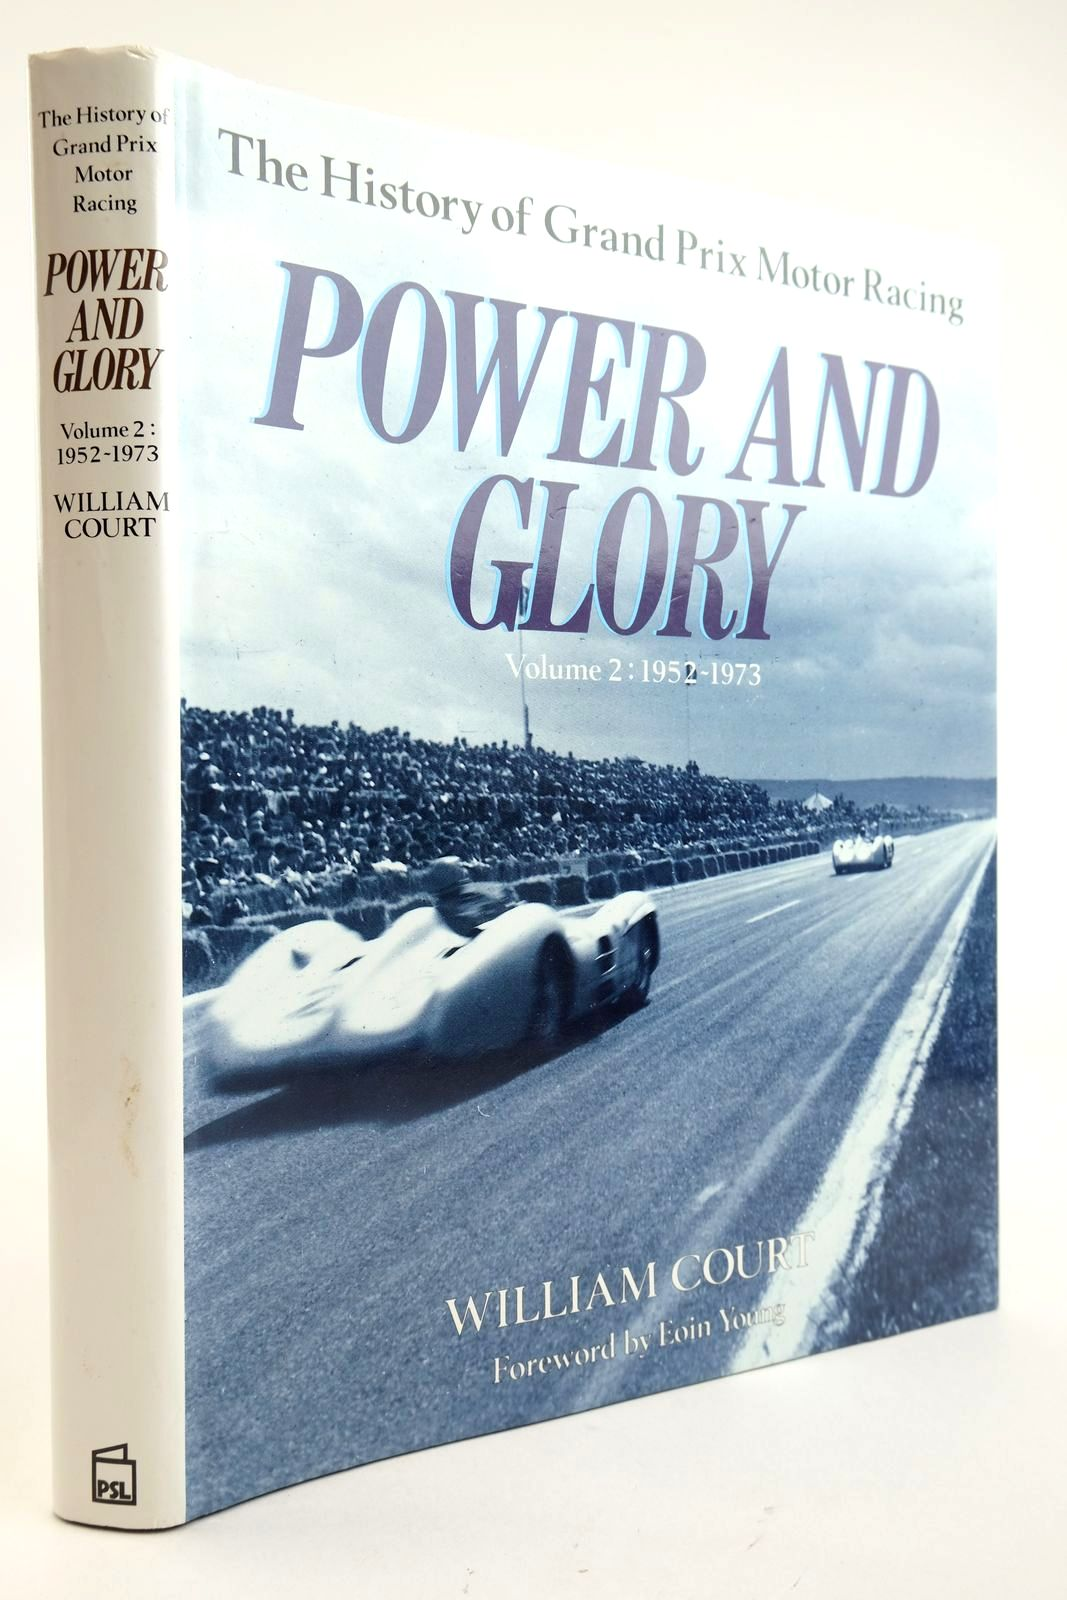 Photo of POWER AND GLORY THE HISTORY OF GRAND PRIX MOTOR RACING VOLUME 2 1952-1973- Stock Number: 2132916